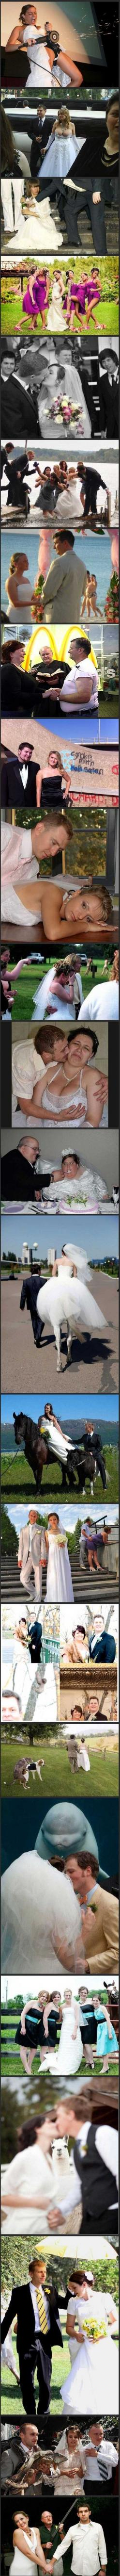 Oh my god no.: Awkward Wedding, Giggle, Wedding Photos, Funny Wedding, Wedding Pictures, So Funny